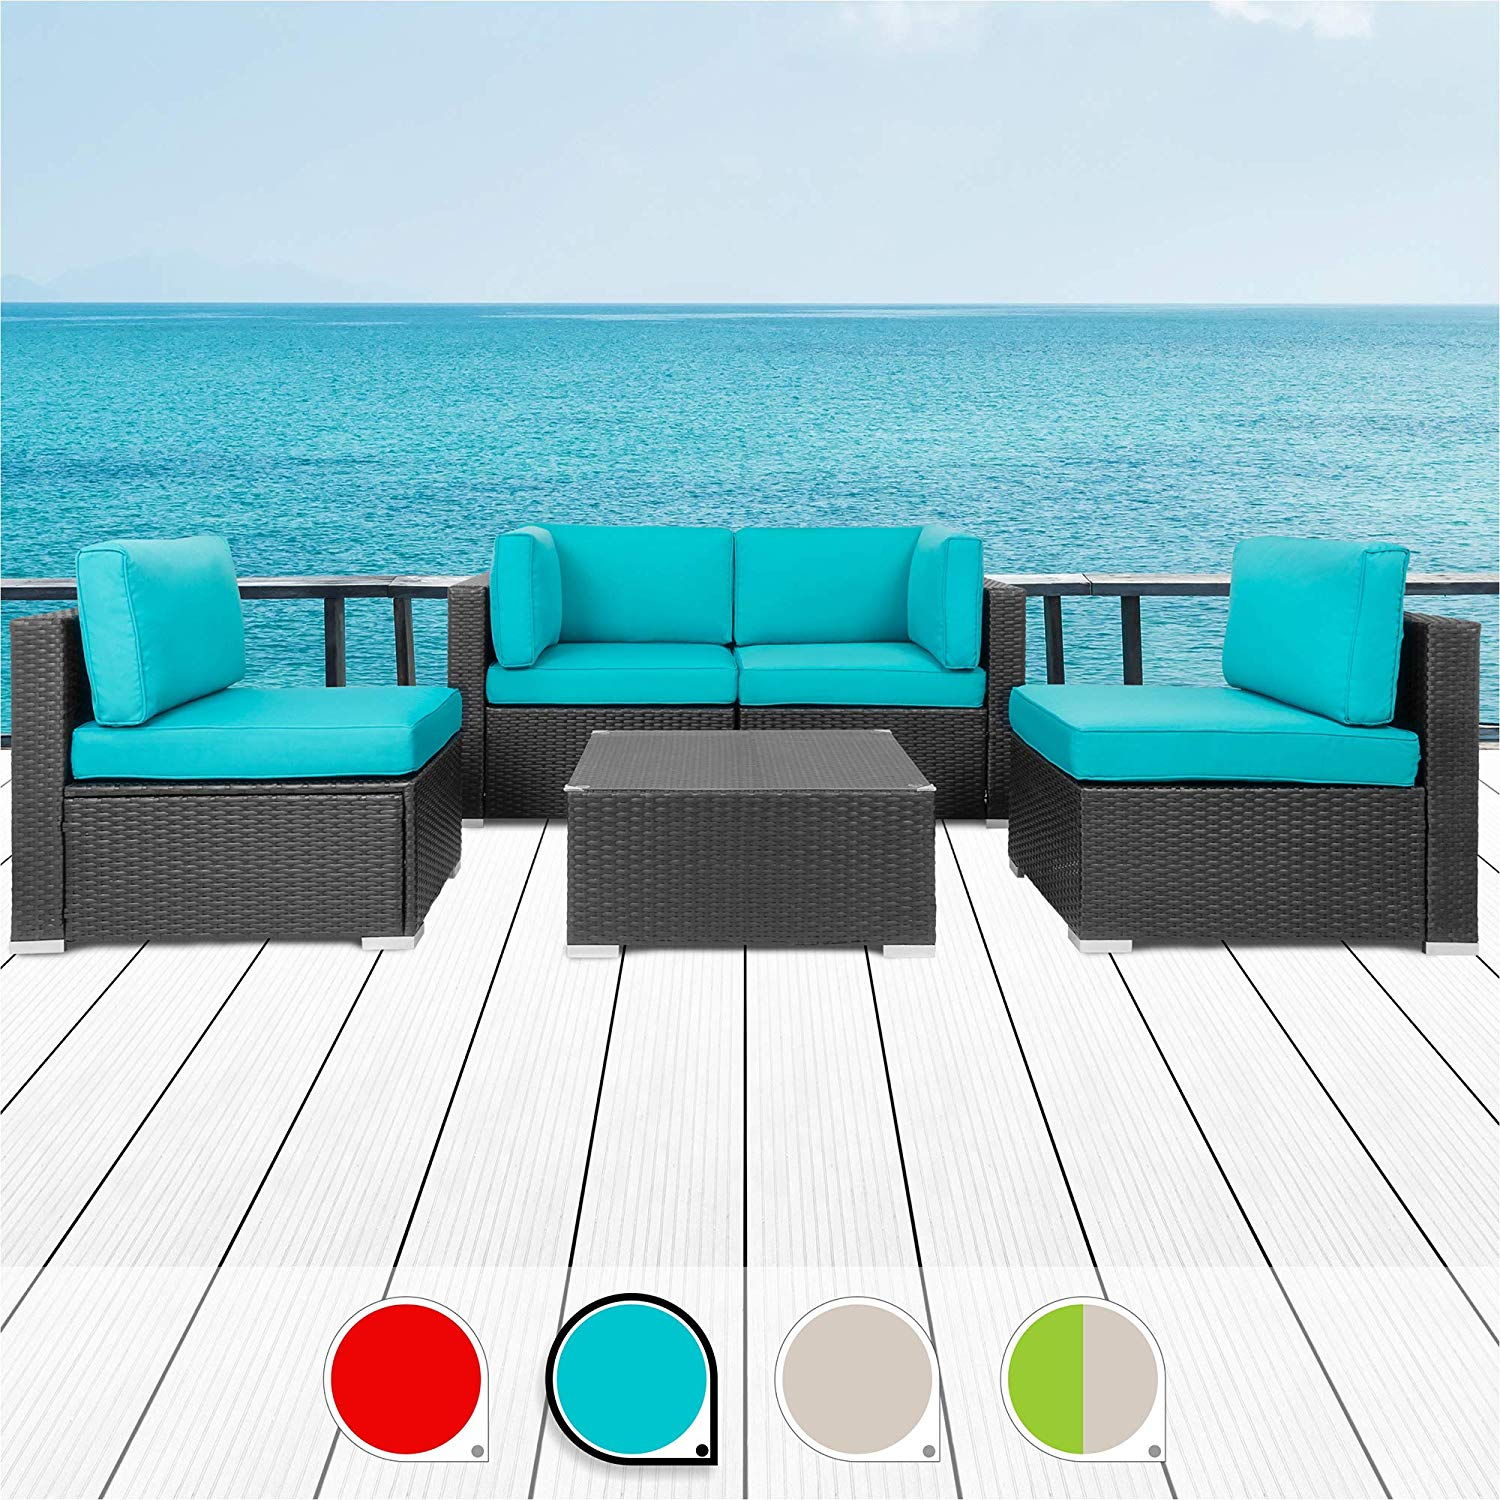 Walsunny 5pcs Patio Outdoor Furniture Sets, Low Back All-weather Rattan Sectional Sofa with Tea Table & Washable Couch Cushions